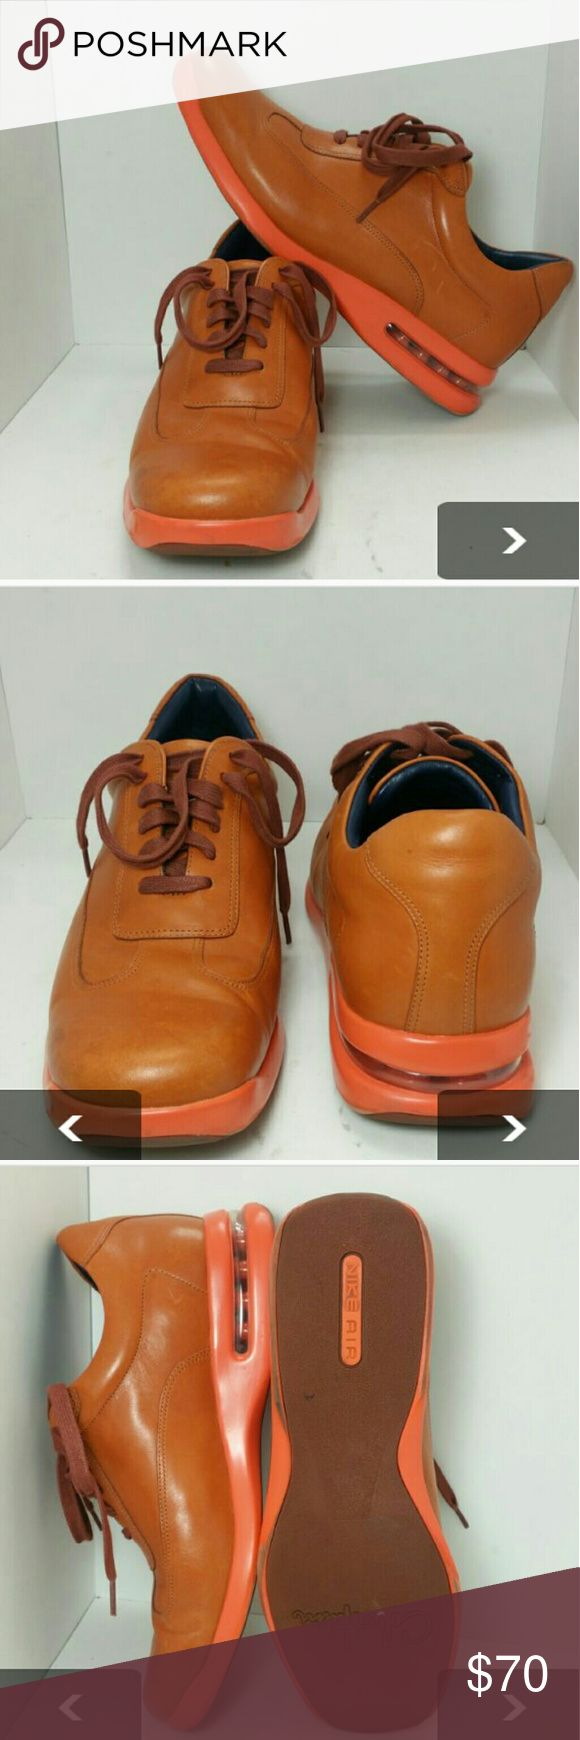 COLE HAAN MEN'S SHOES VERY CLEAN INSIDE-OUT   SKE # -UV Cole Haan Shoes